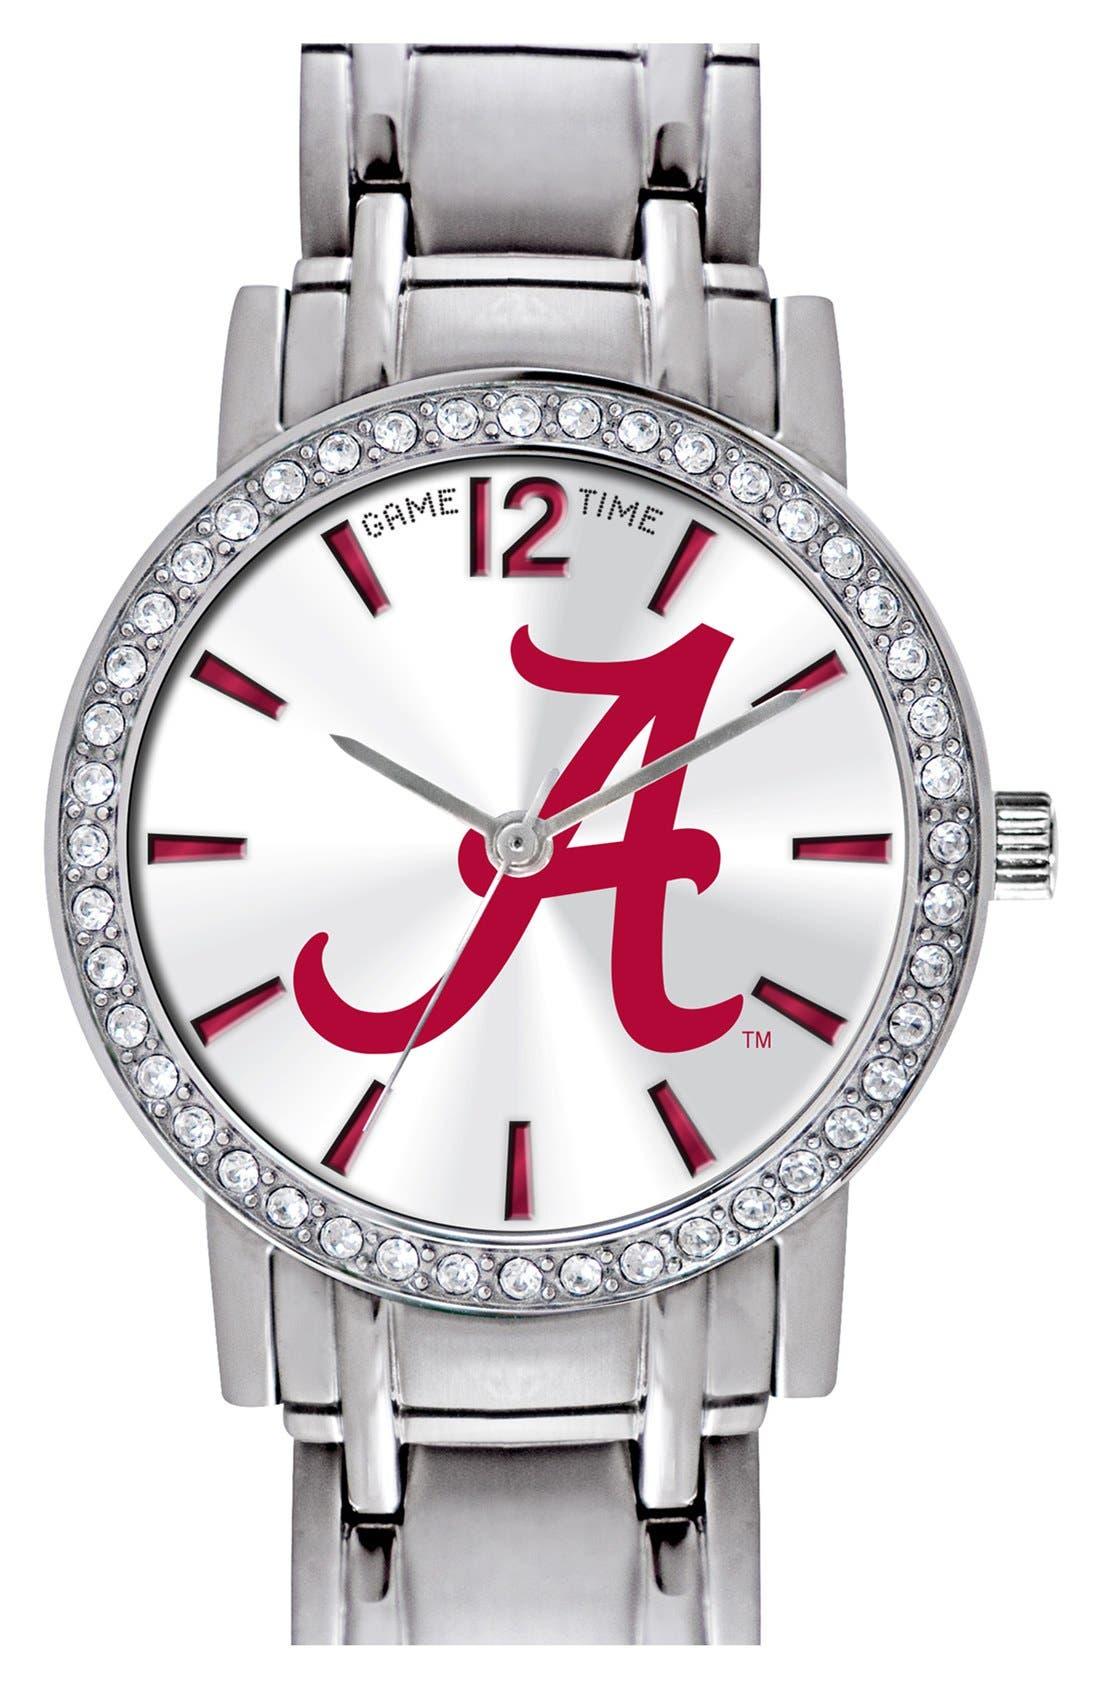 Main Image - Game Time Watches 'College All Star - University of Alabama' Crystal Bezel Bracelet Watch, 32mm